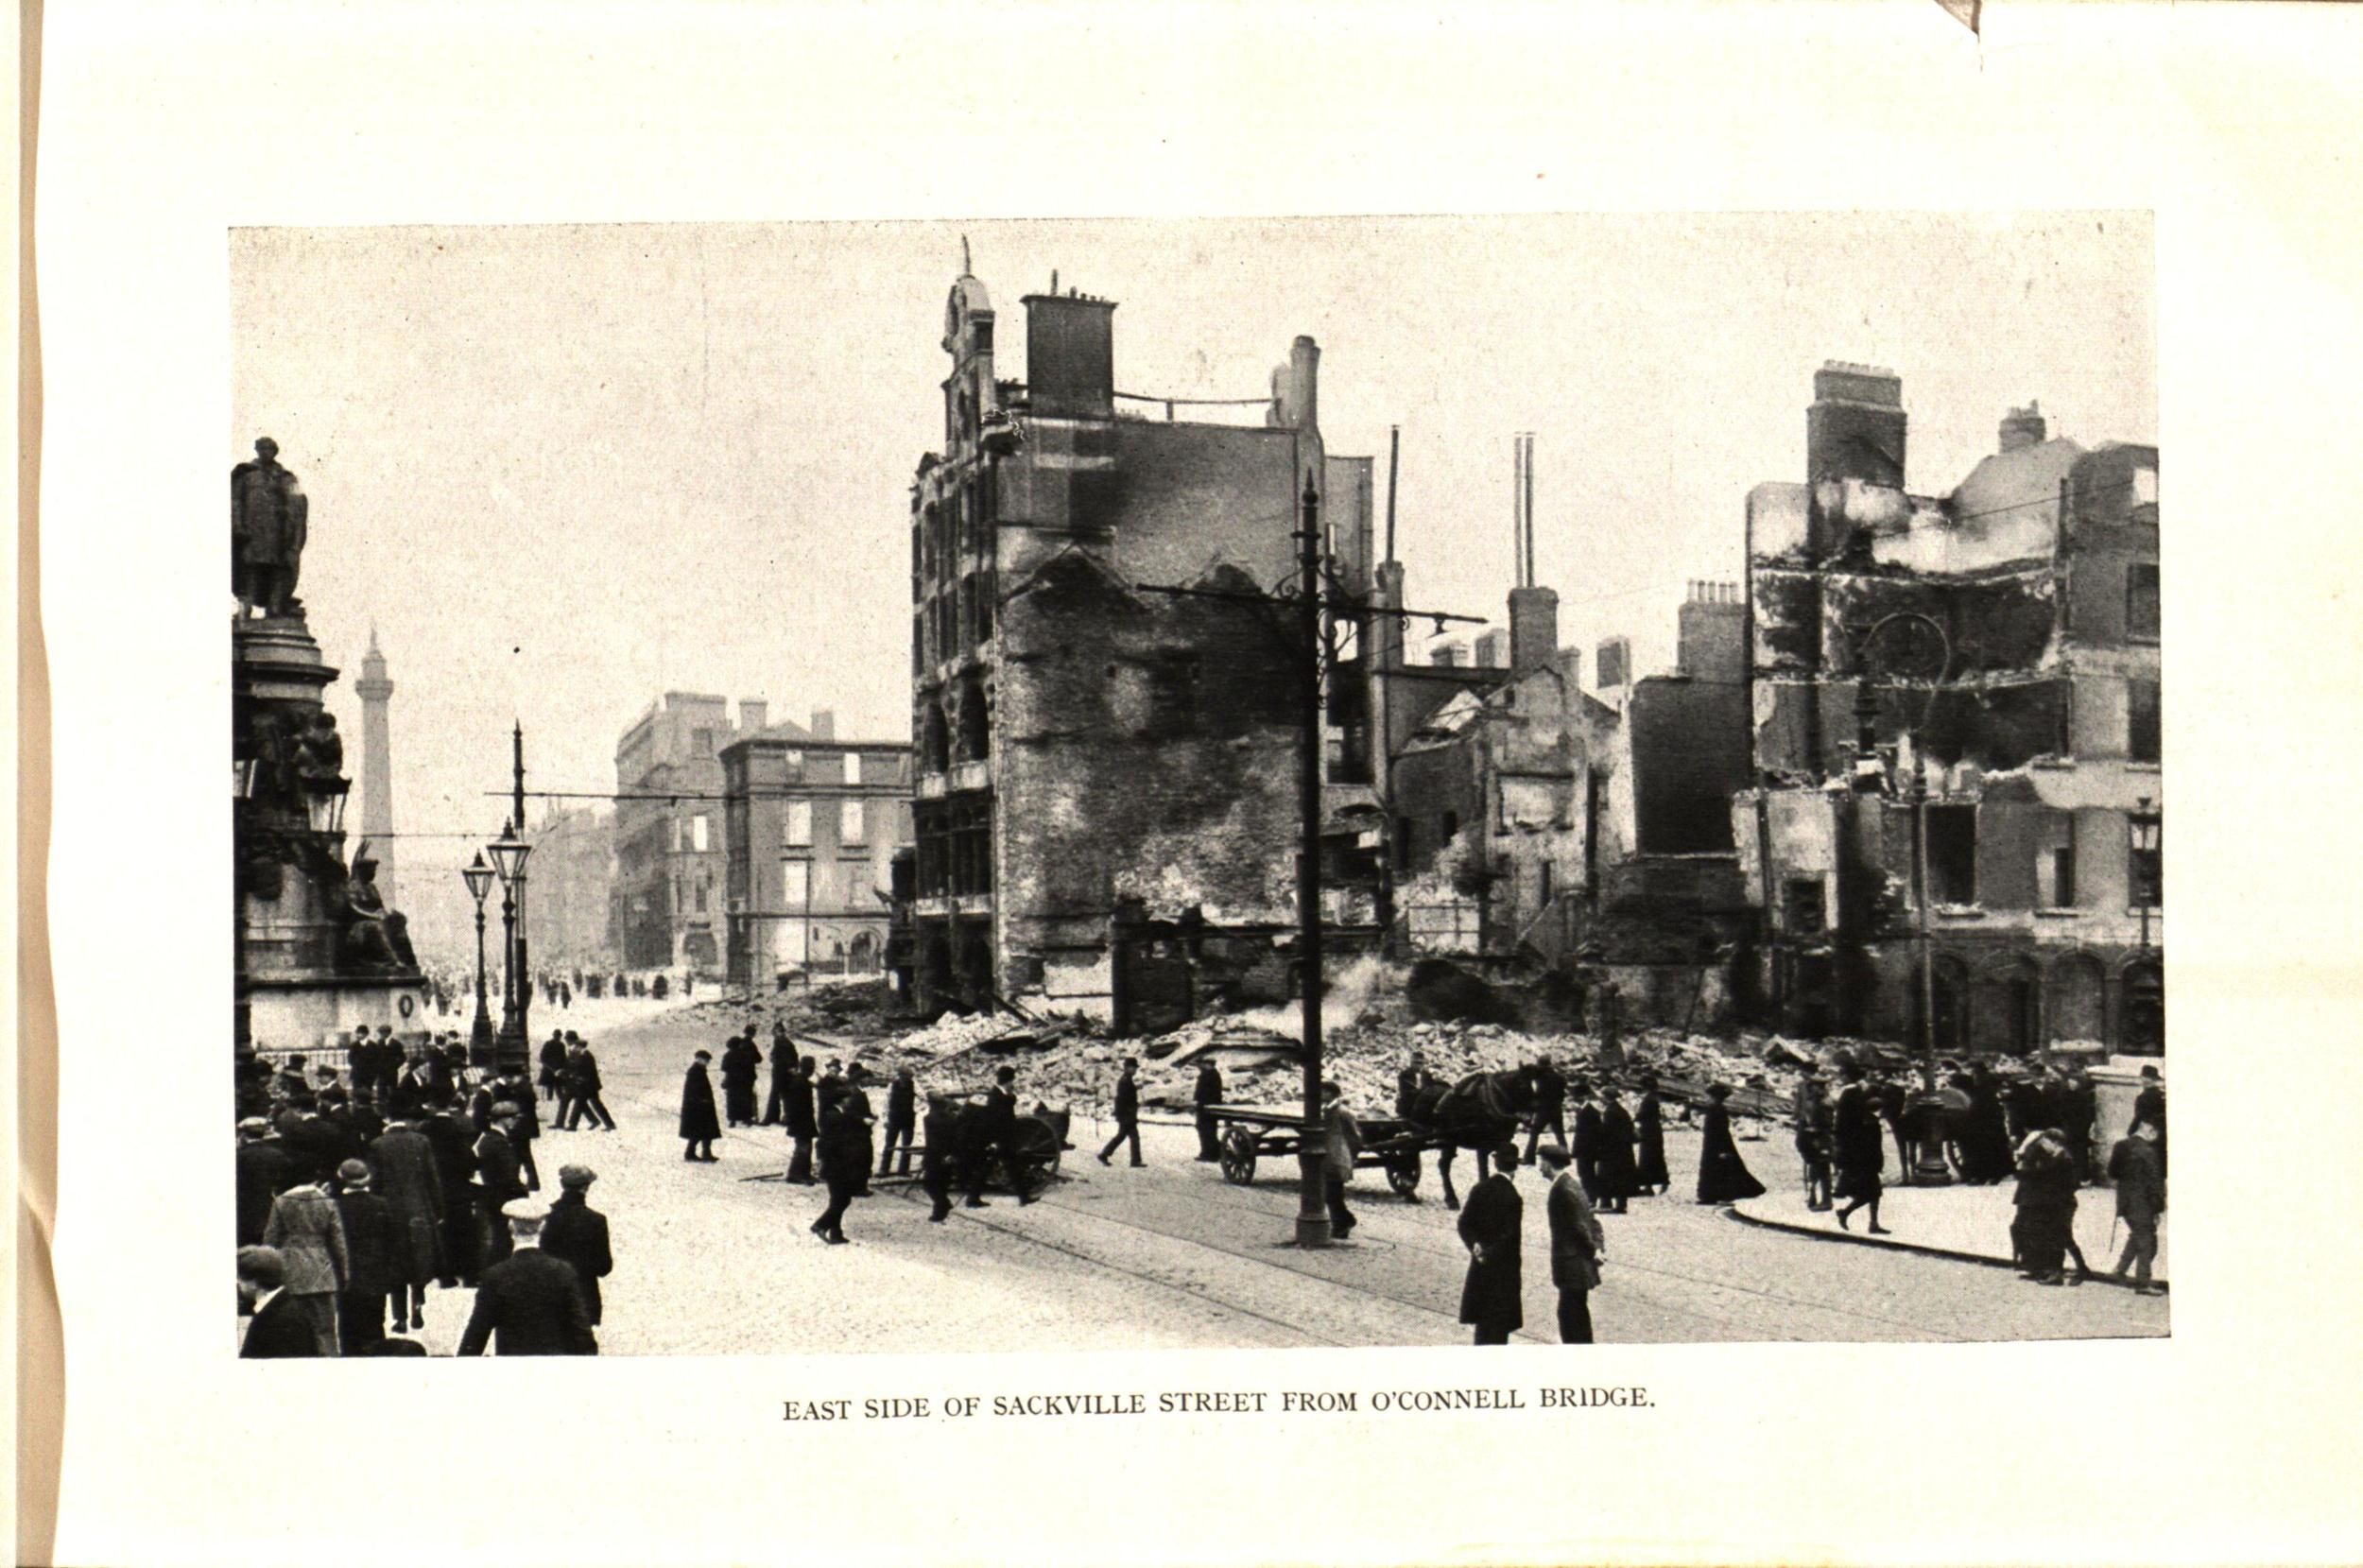 East side of Sackville Street (now O'Connell St.) from O'Connell bridge